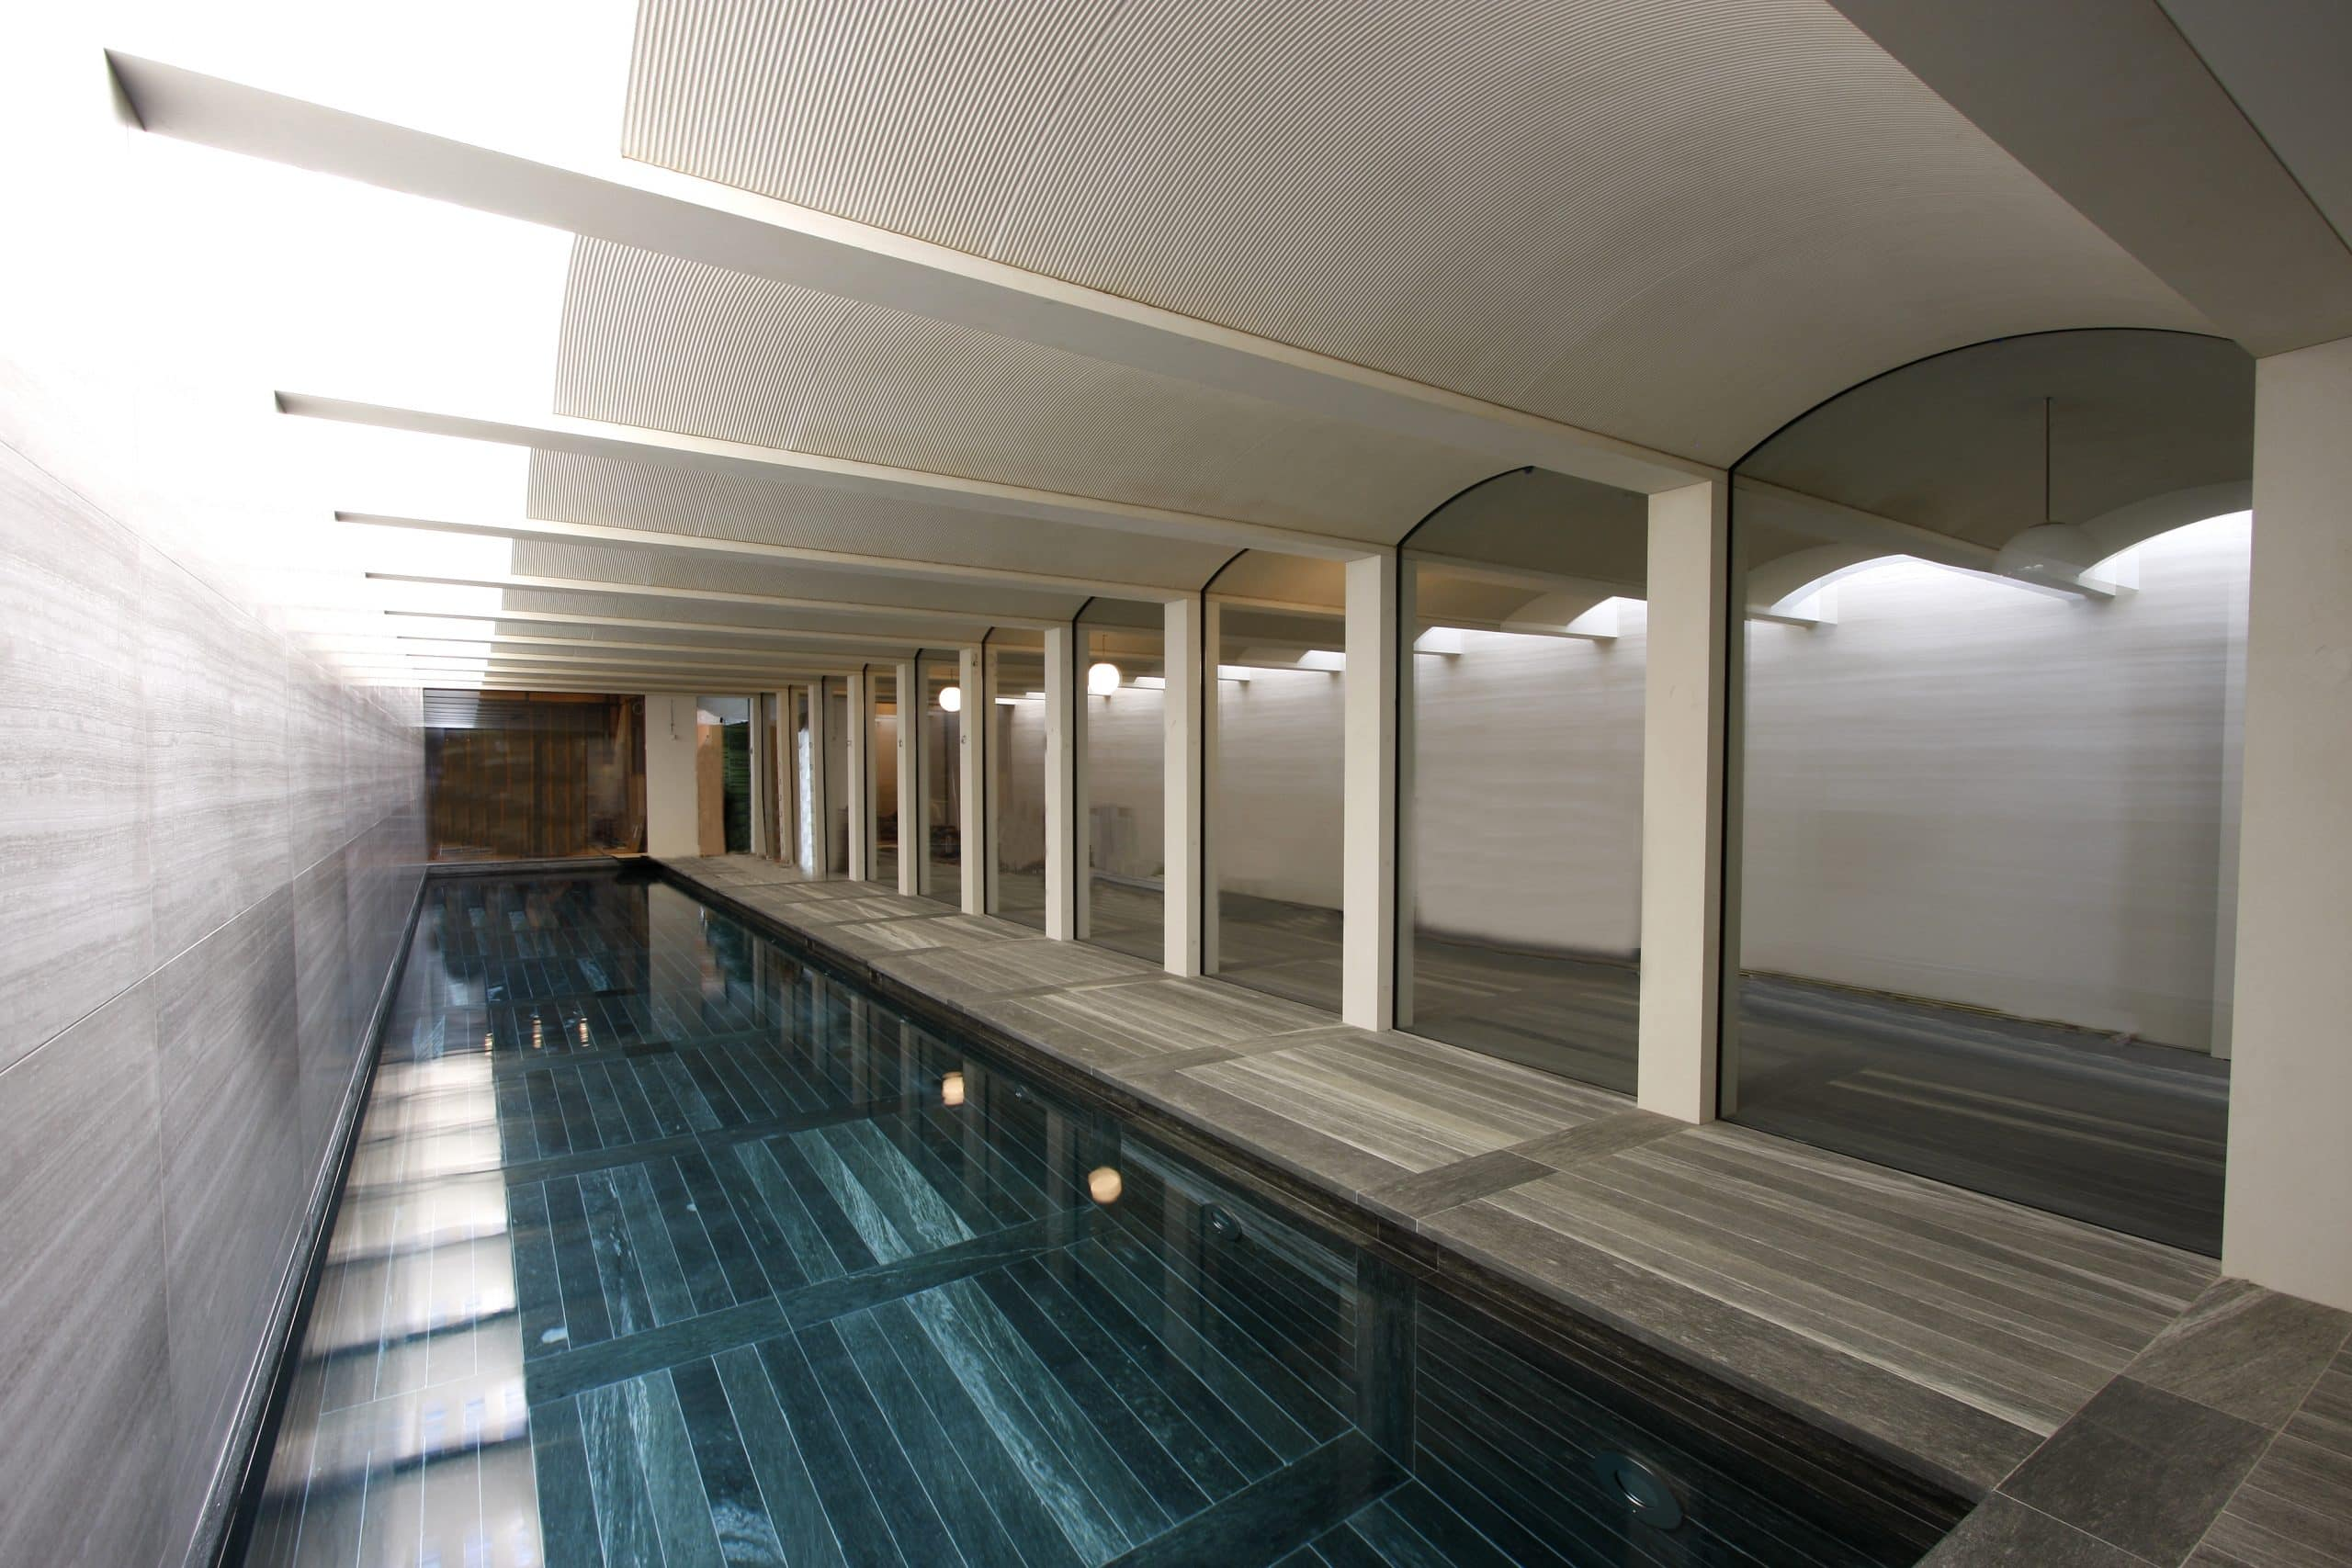 Canal House - heated glass in arch as focus by the indoor pool